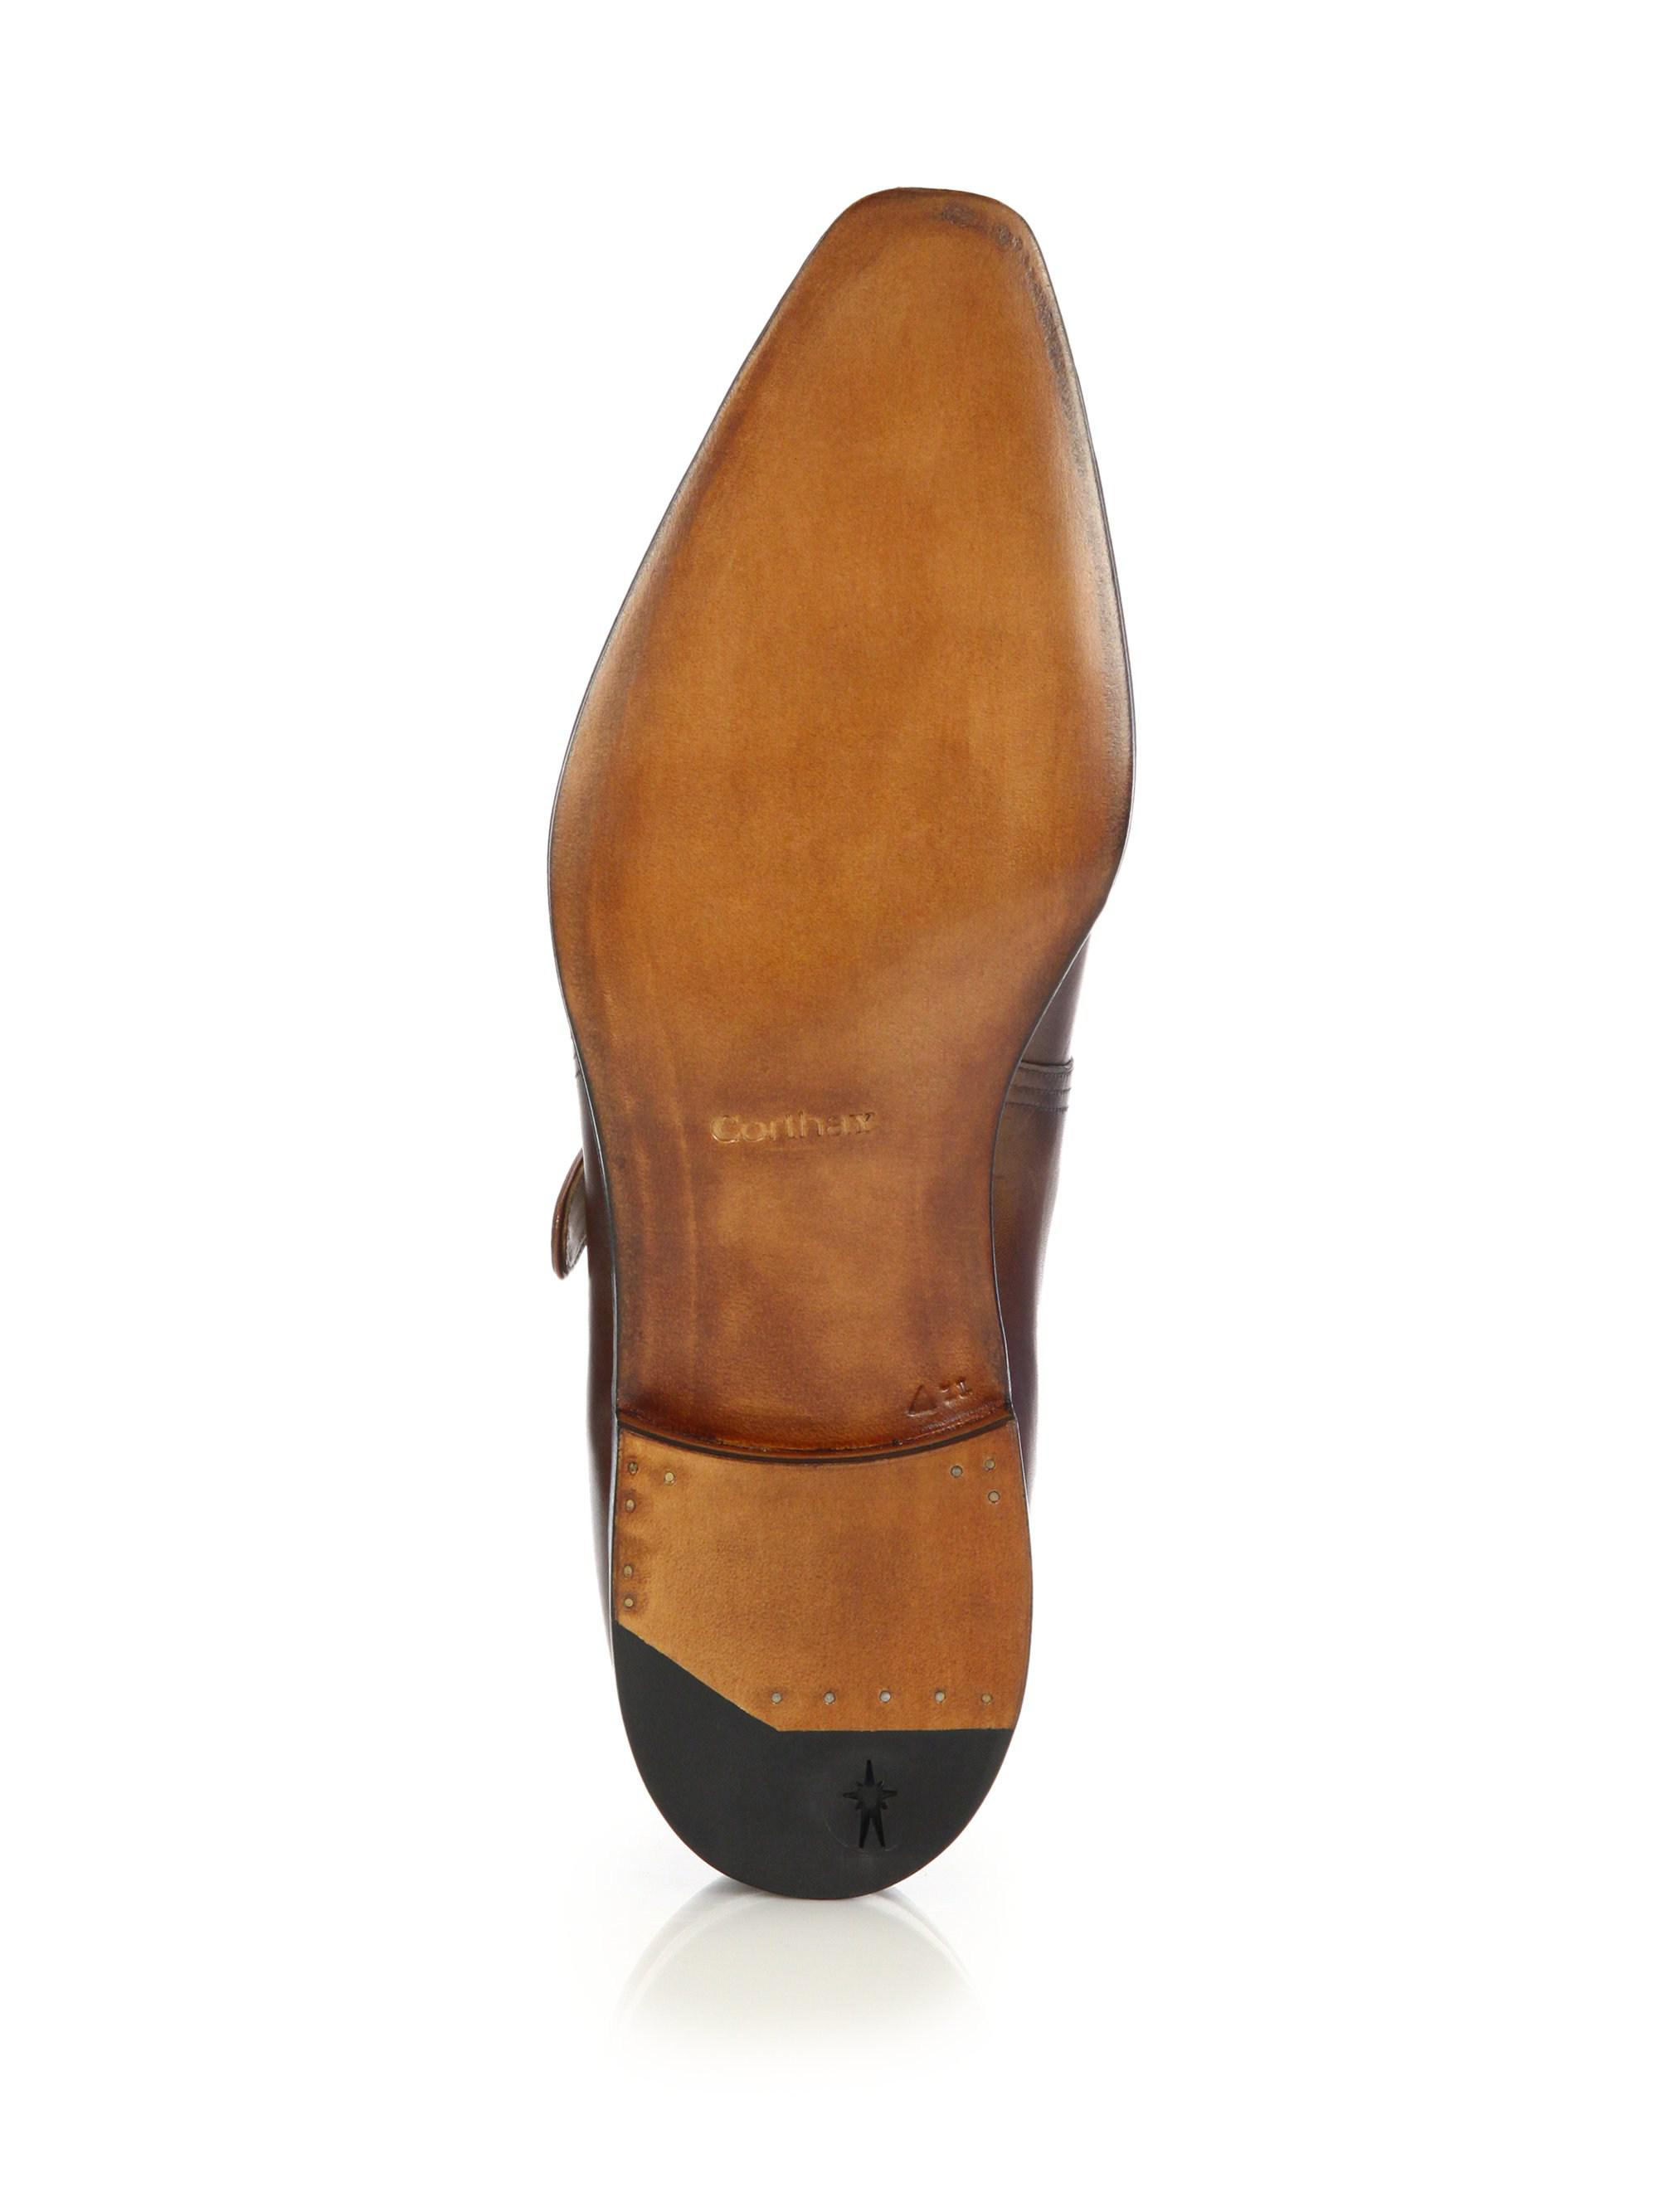 Corthay Arca Buckle Pullman French Leather Dress Shoes in Brown for